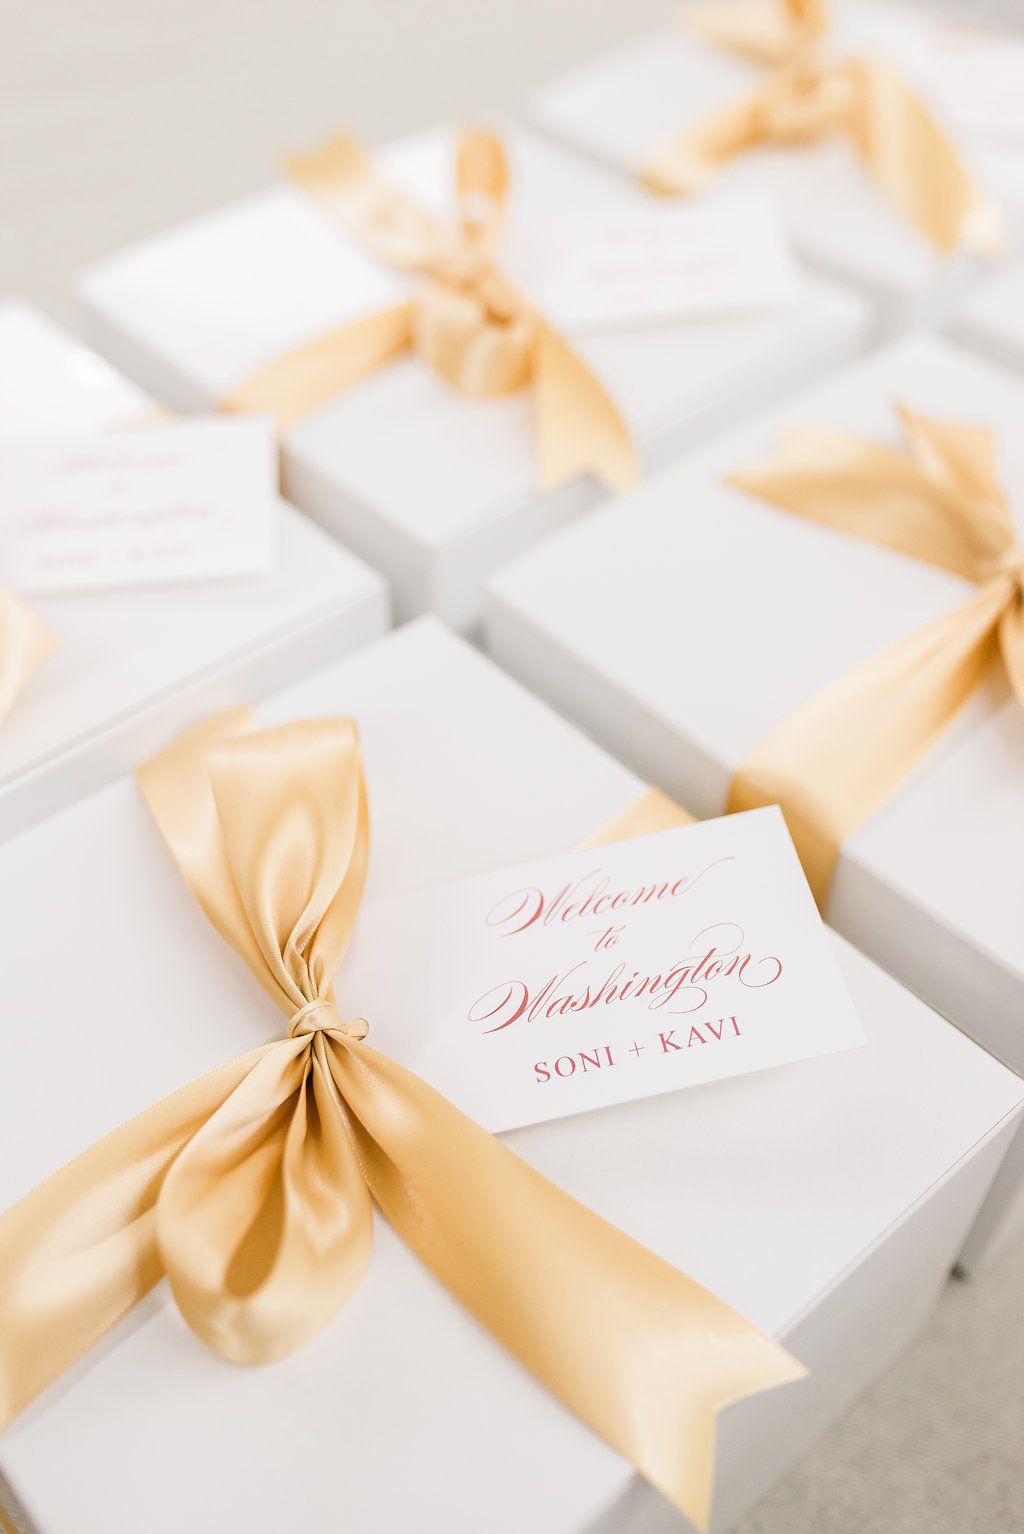 Artisan Welcome Gifts by Marigold + Grey | Marigold, Corporate ...